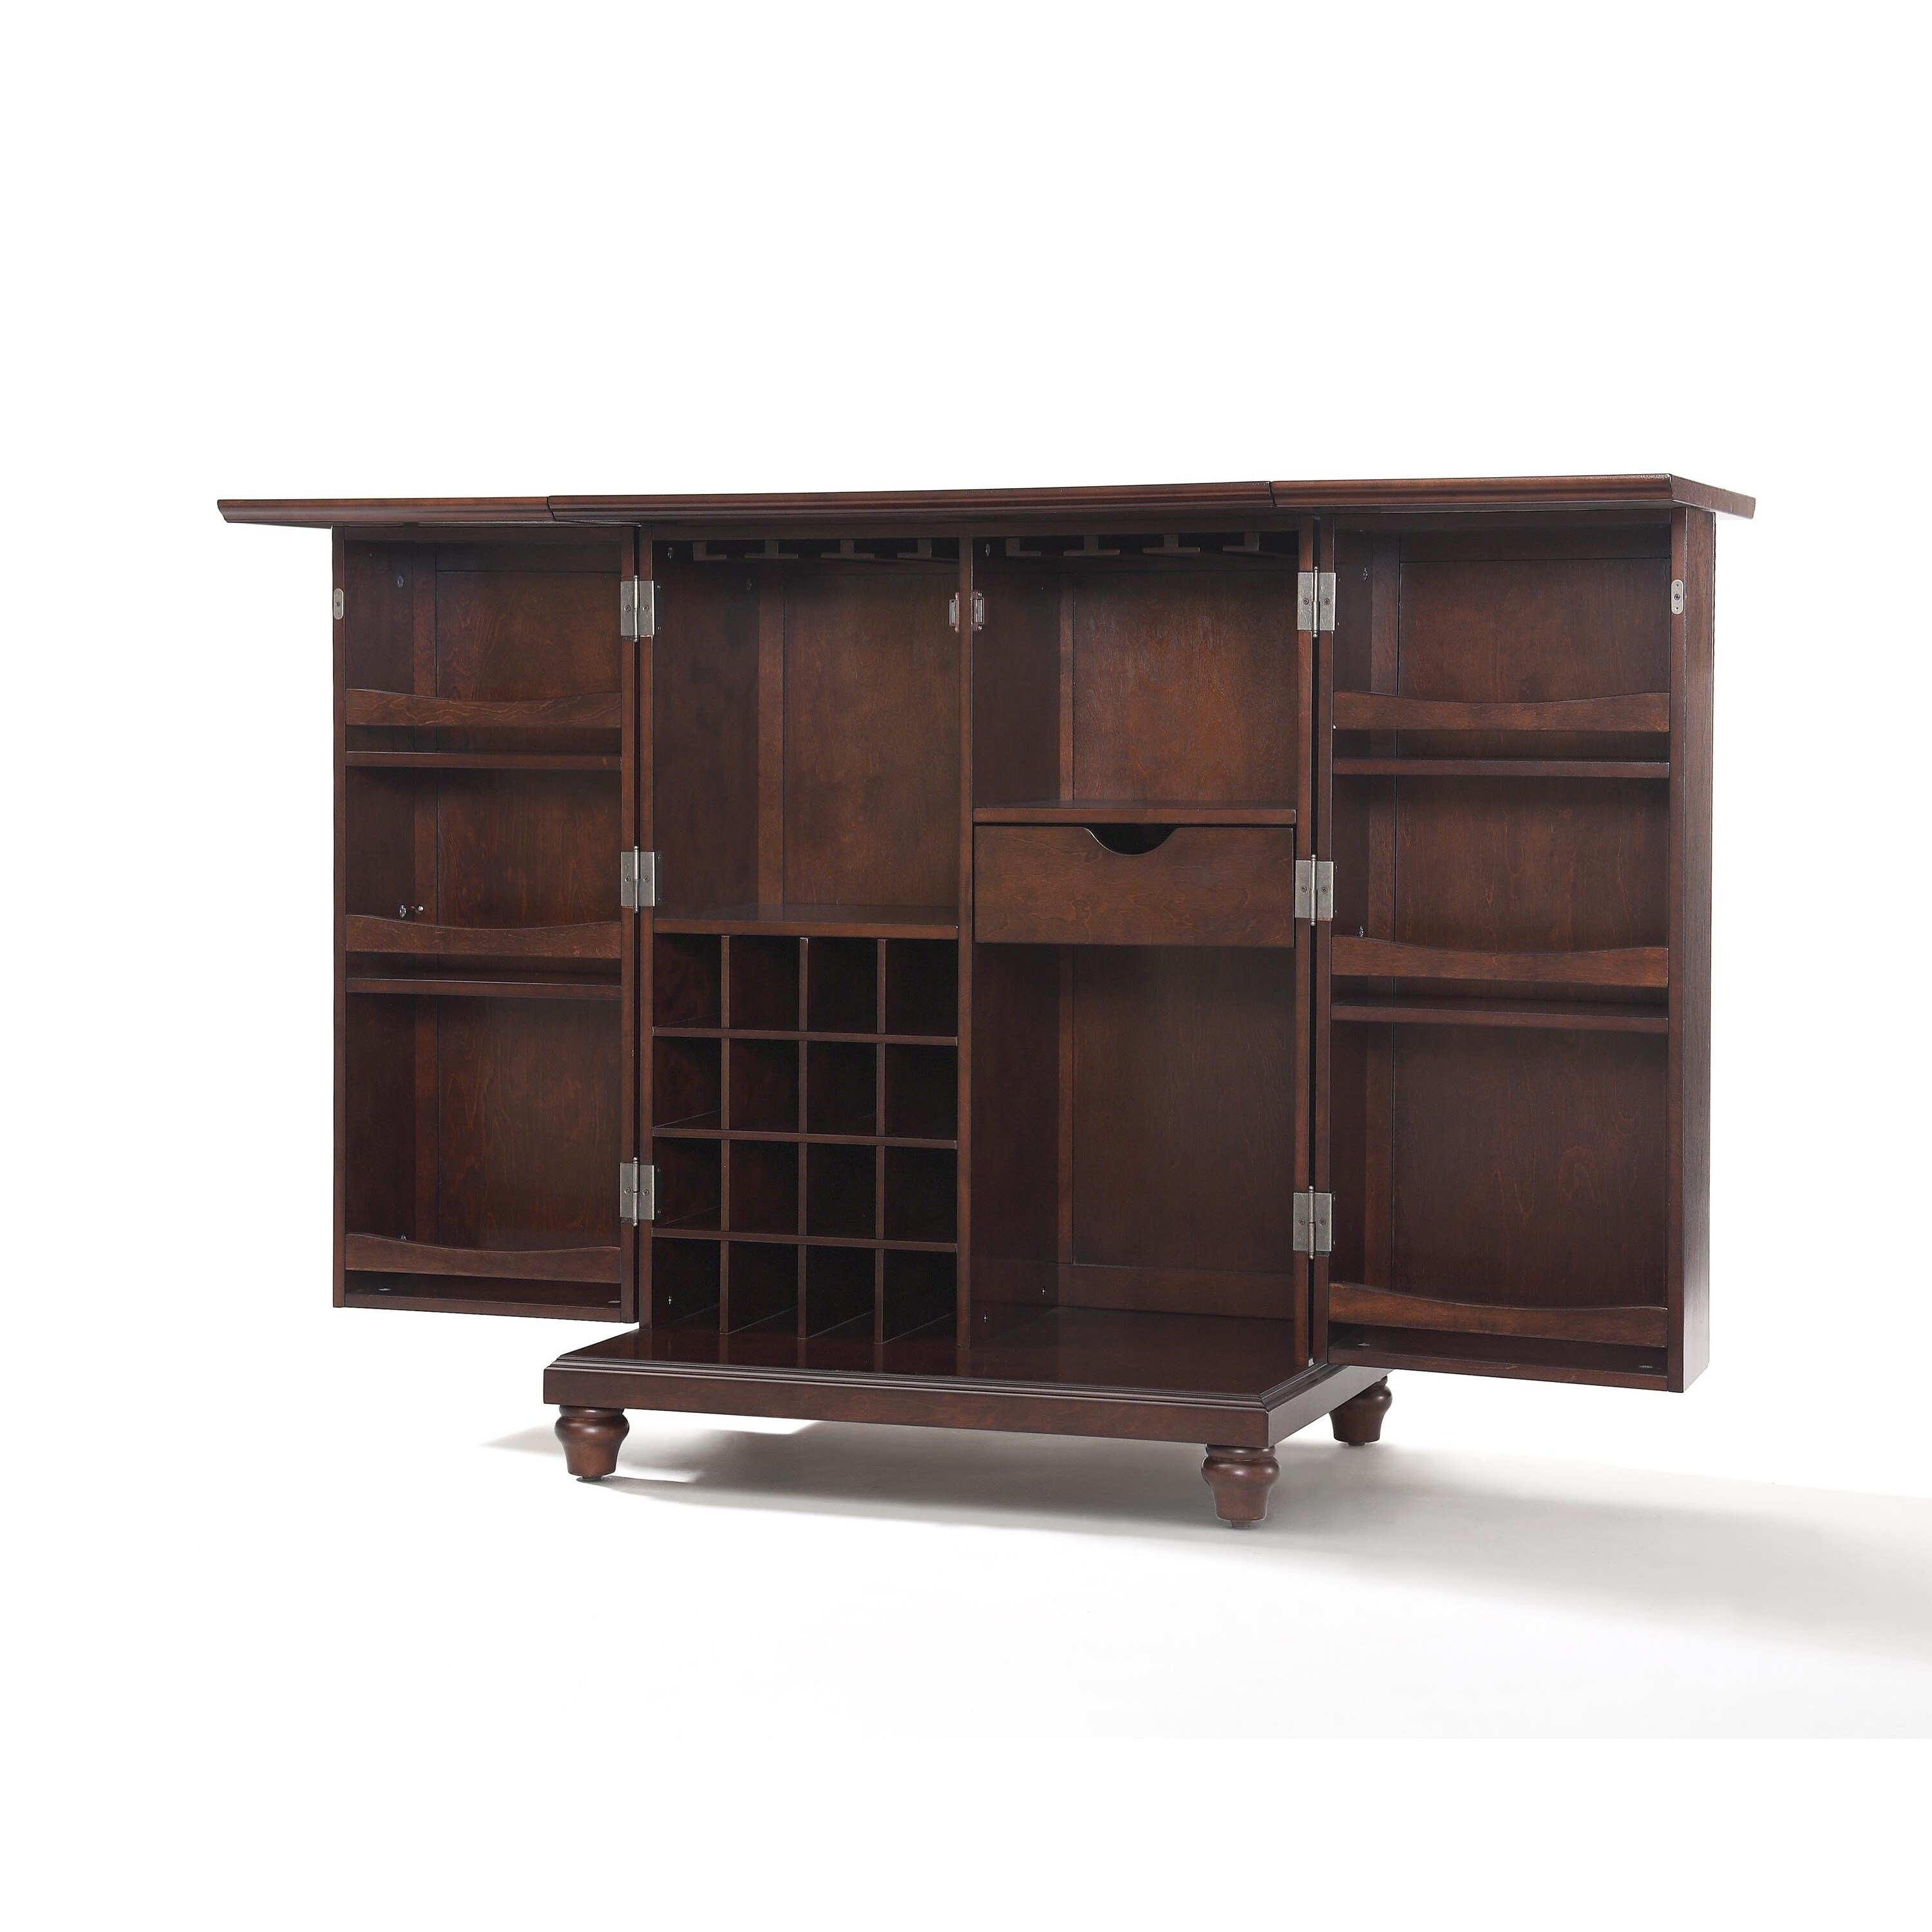 Ordinaire Shop Crosley Furniture Cambridge Brown Wood Expandable Bar Cabinet   Free  Shipping Today   Overstock.com   15269155